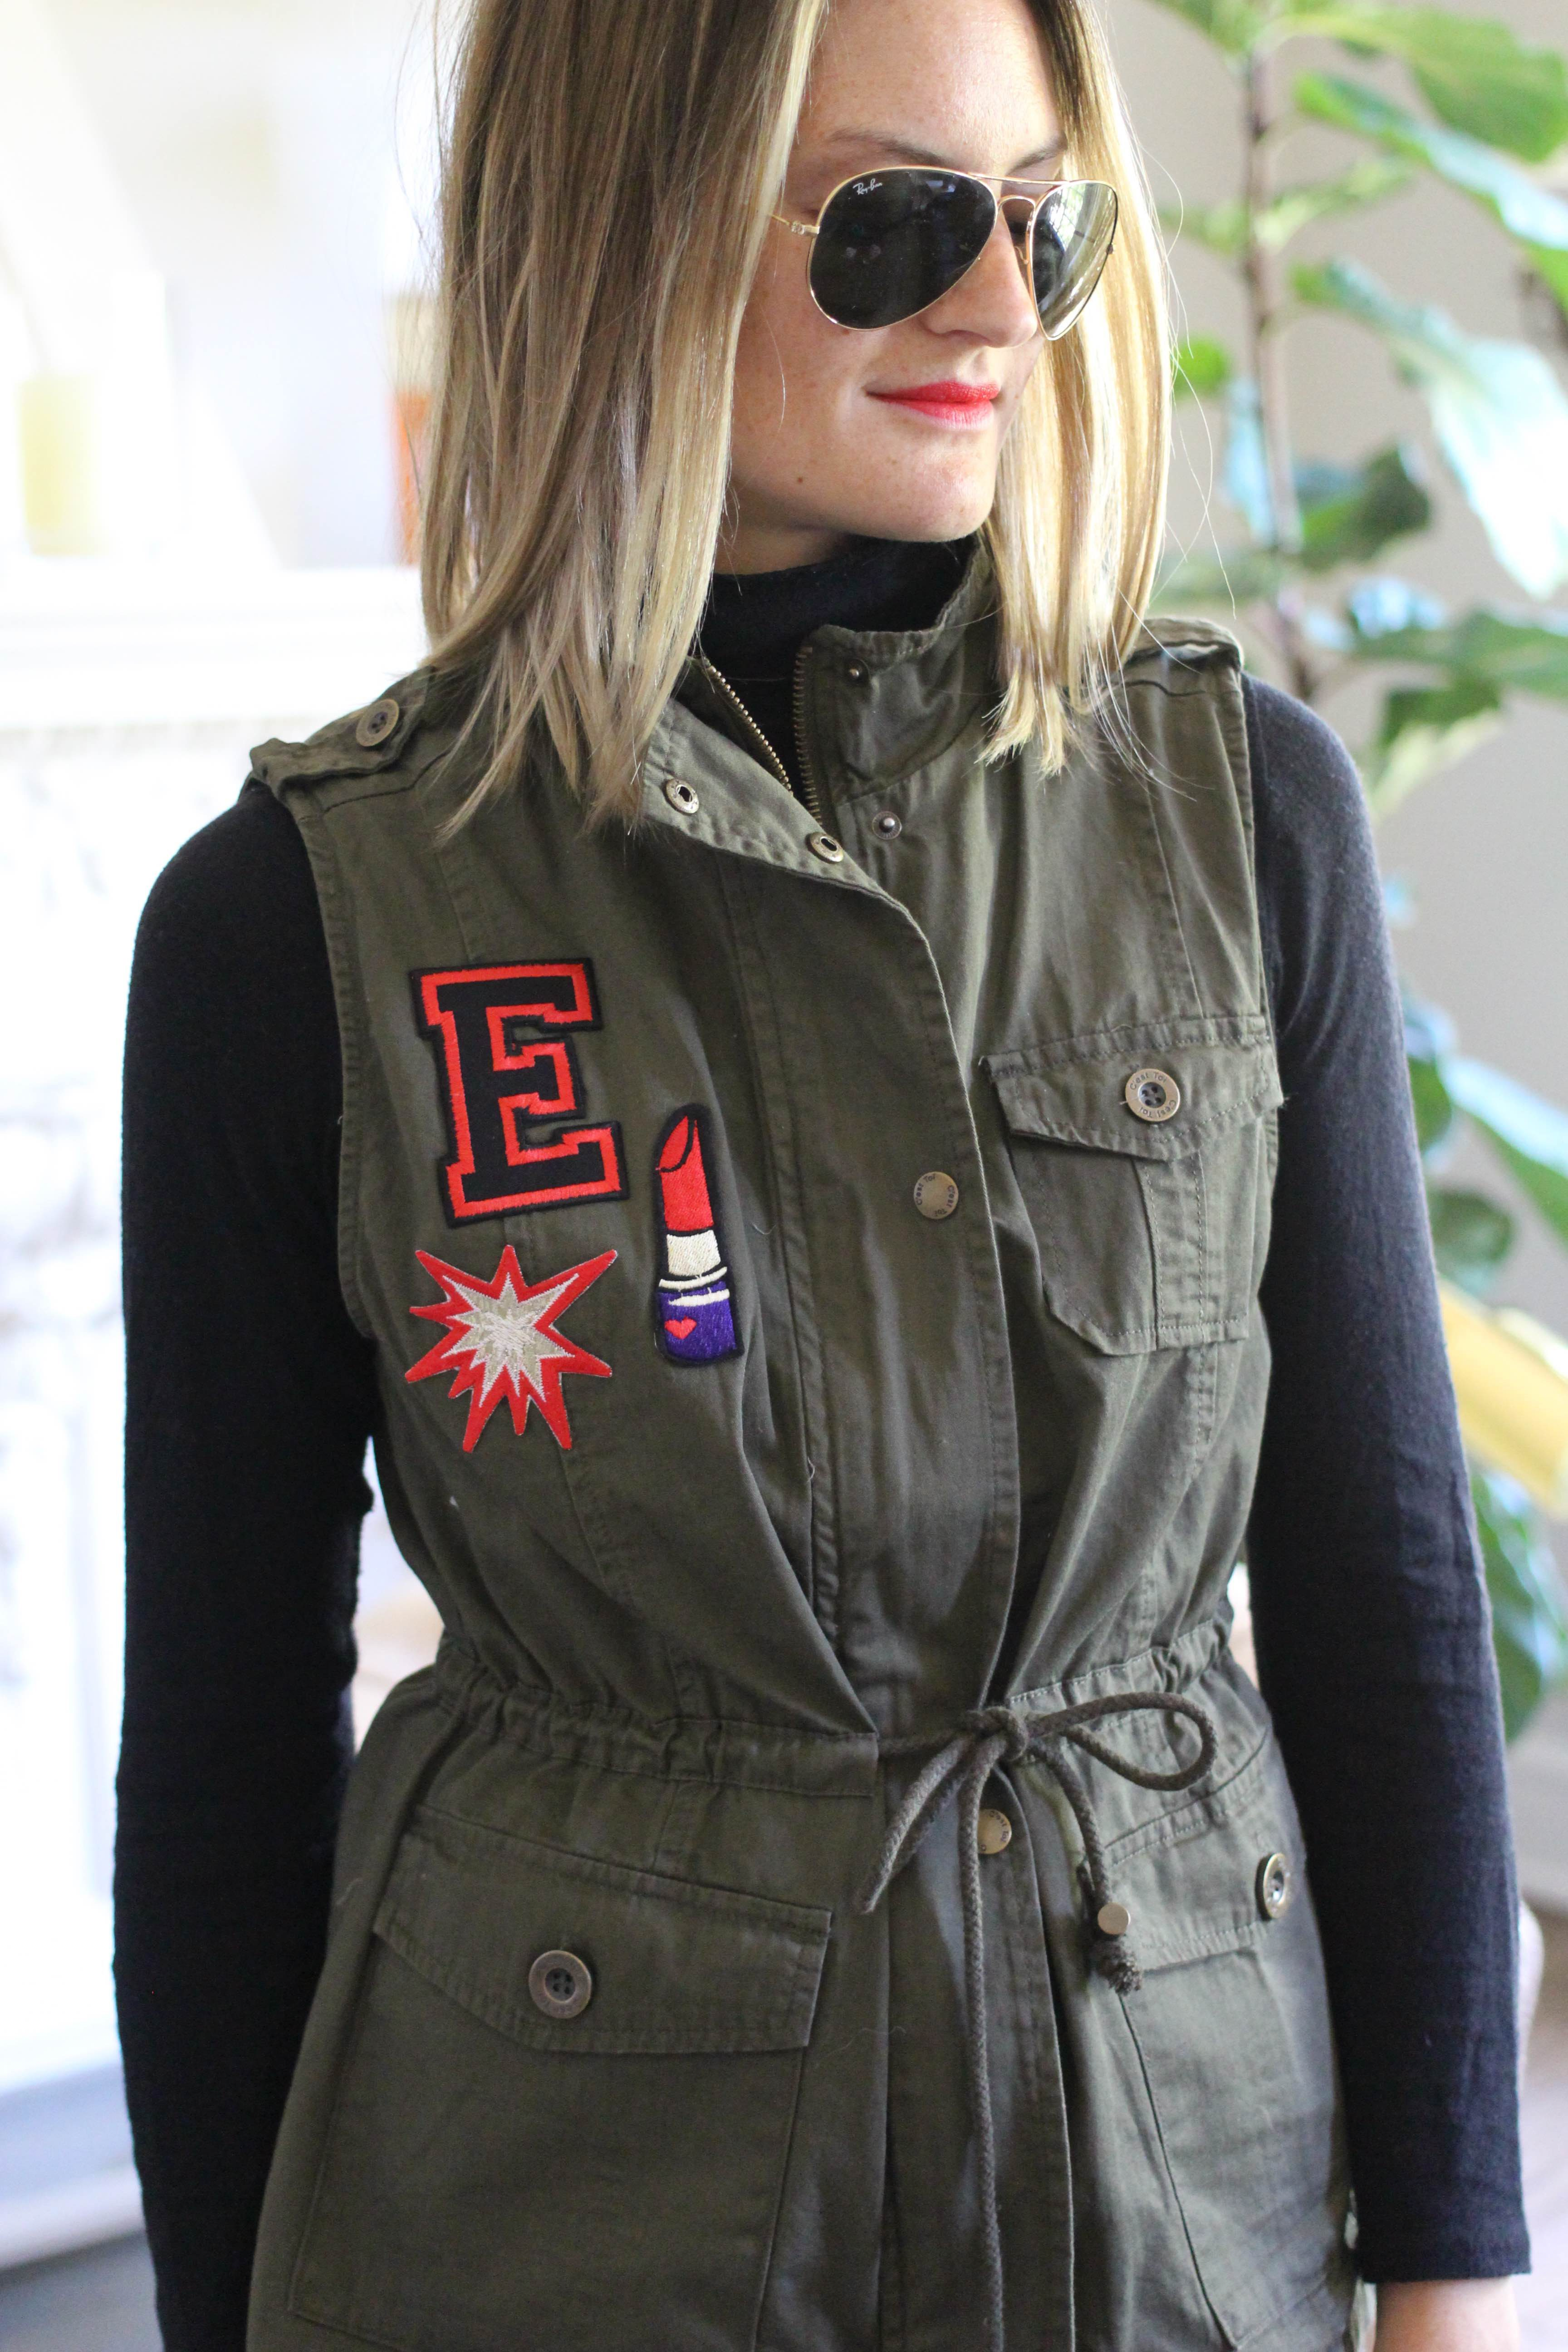 DIY: Utility Vest with Patches